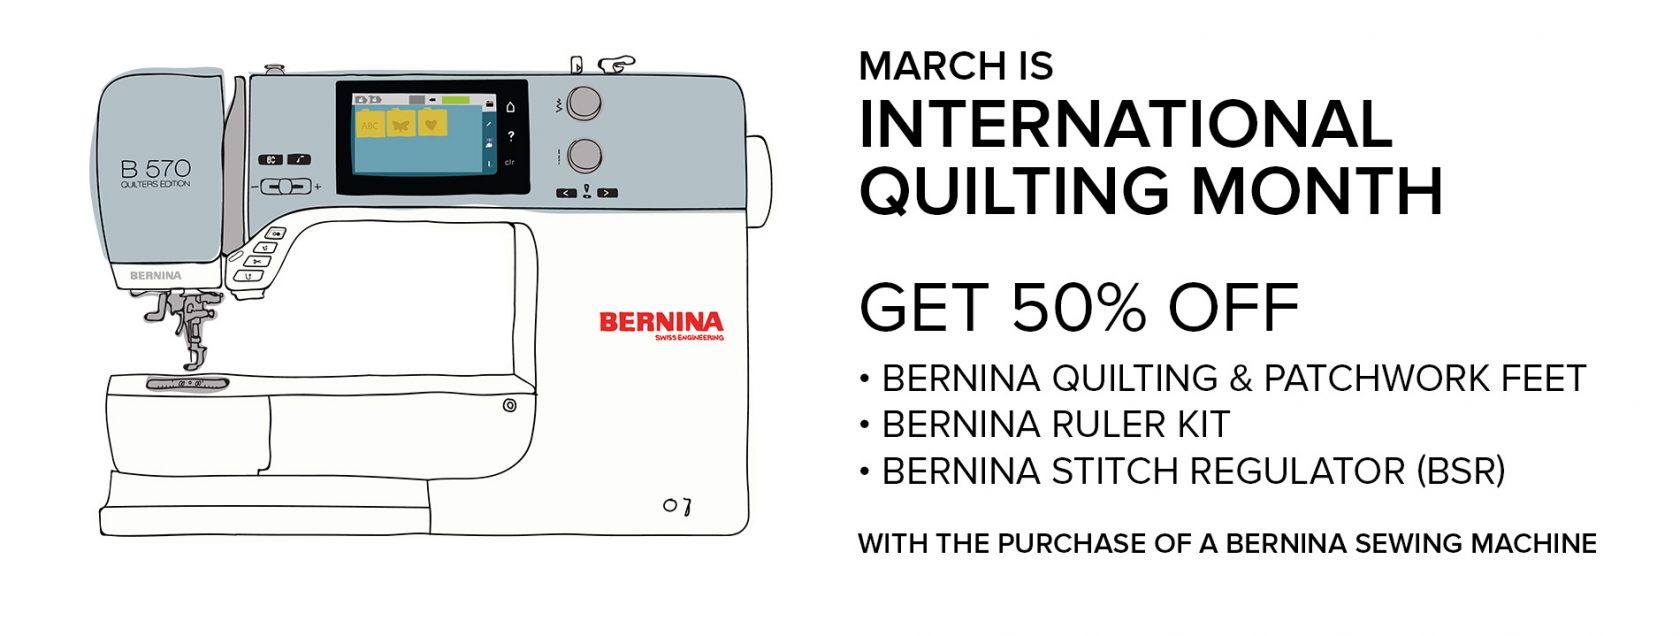 Get 50% off select quilting feet and accessories with the purchase of a new BERNINA.